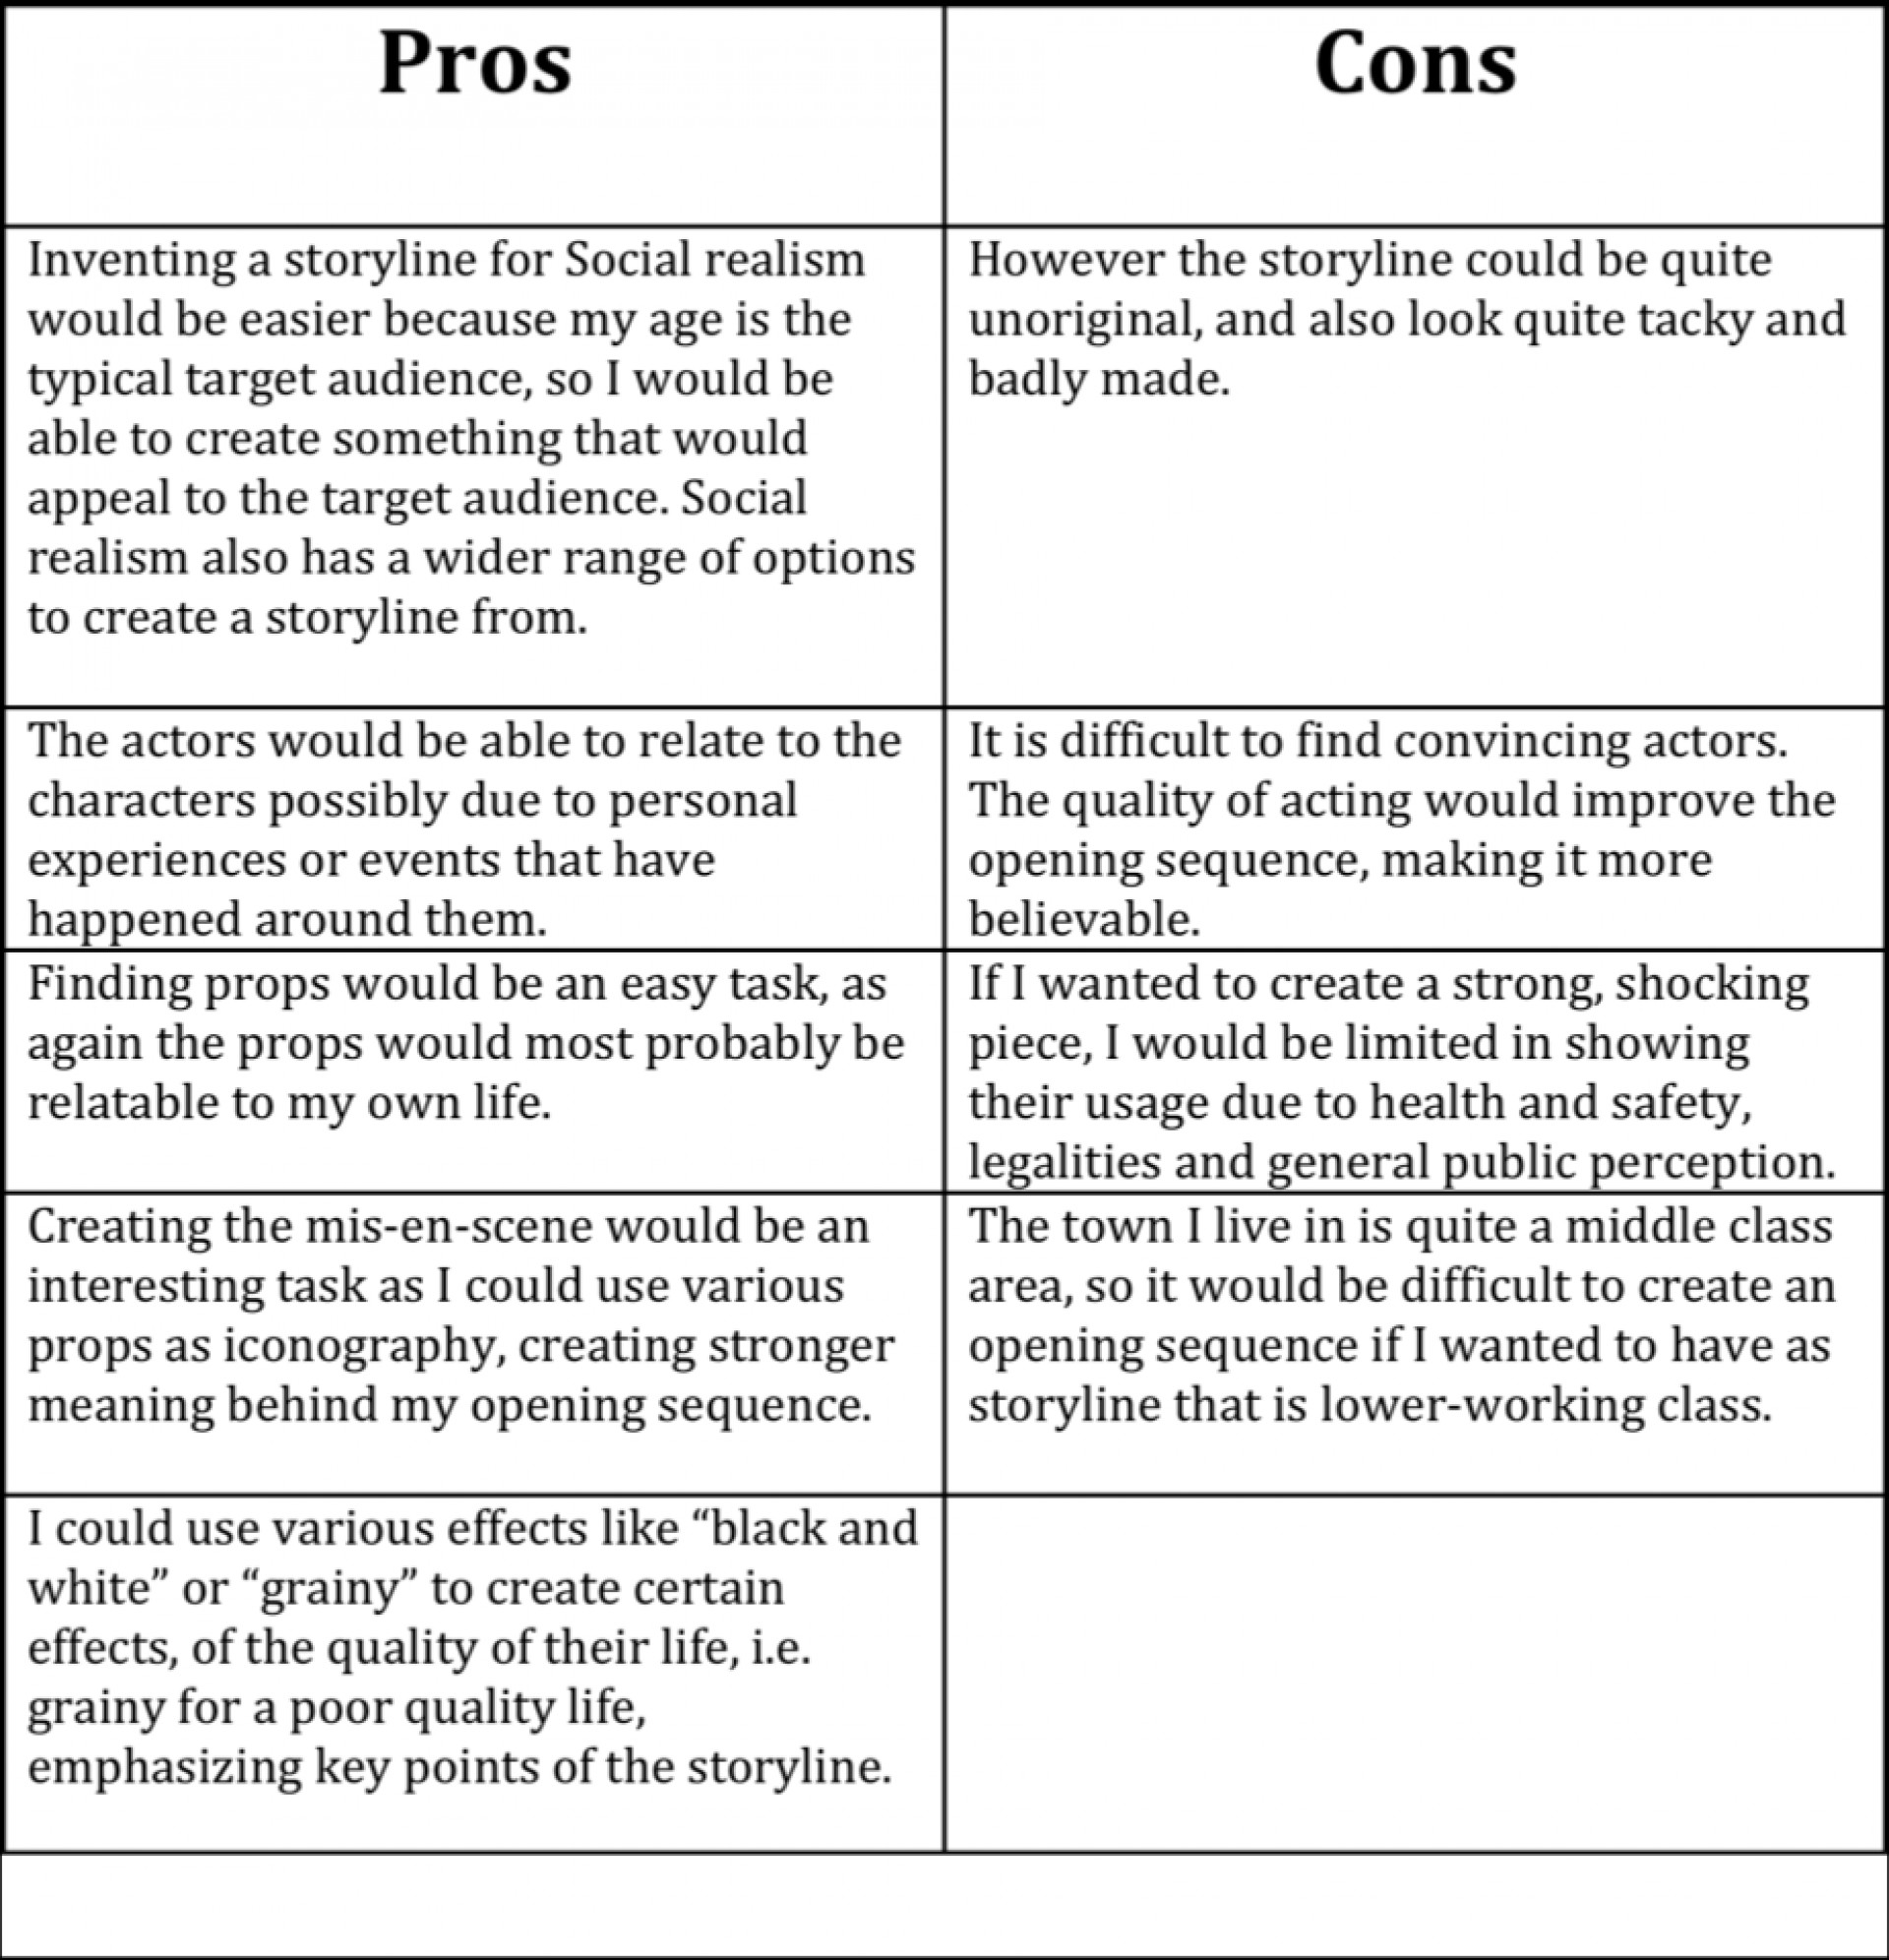 001 Untitled1 Pros And Cons Of Social Media Essay Fascinating In Education Pdf 200 Words 1920